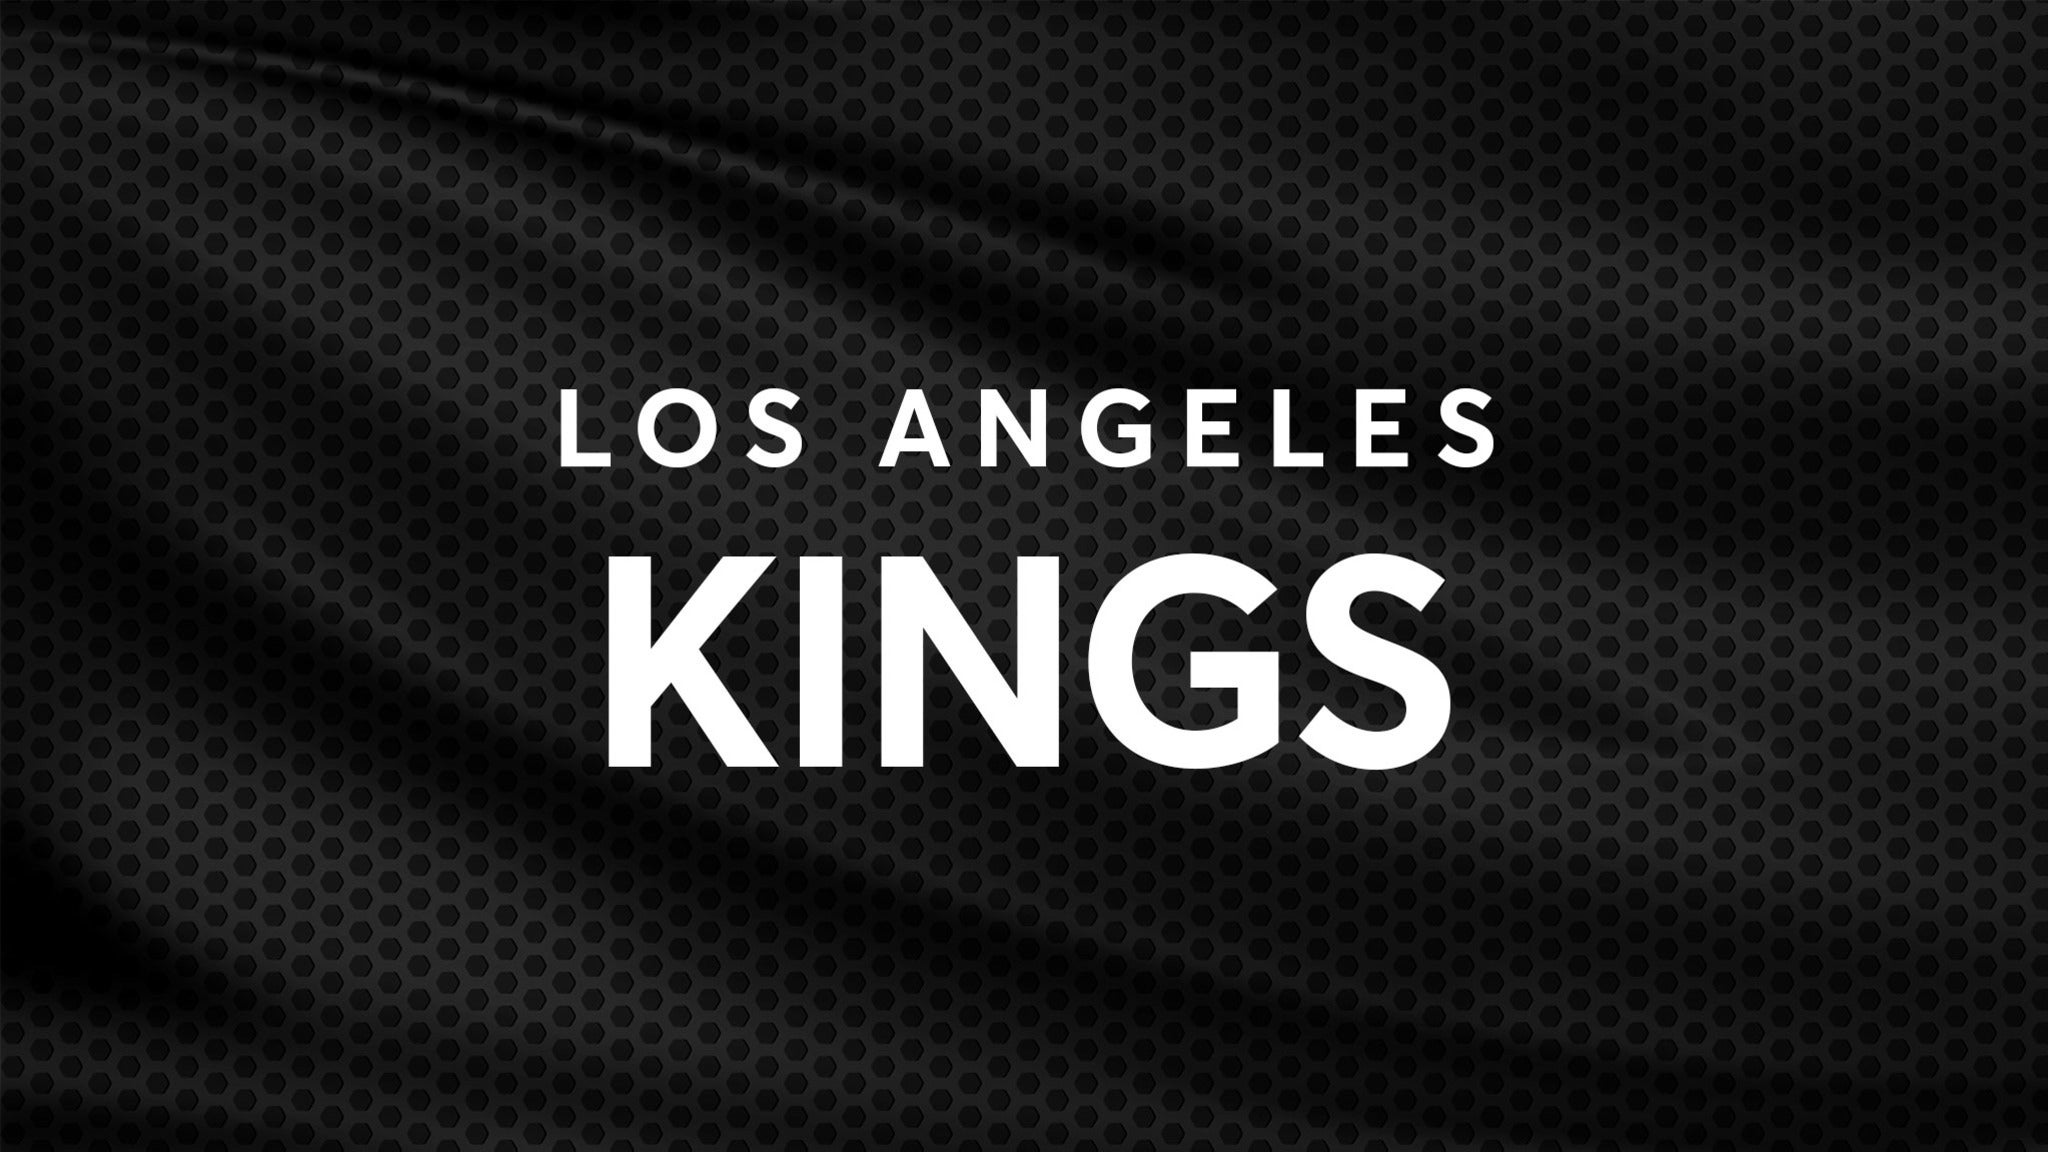 Los Angeles Kings vs. Edmonton Oilers at STAPLES Center